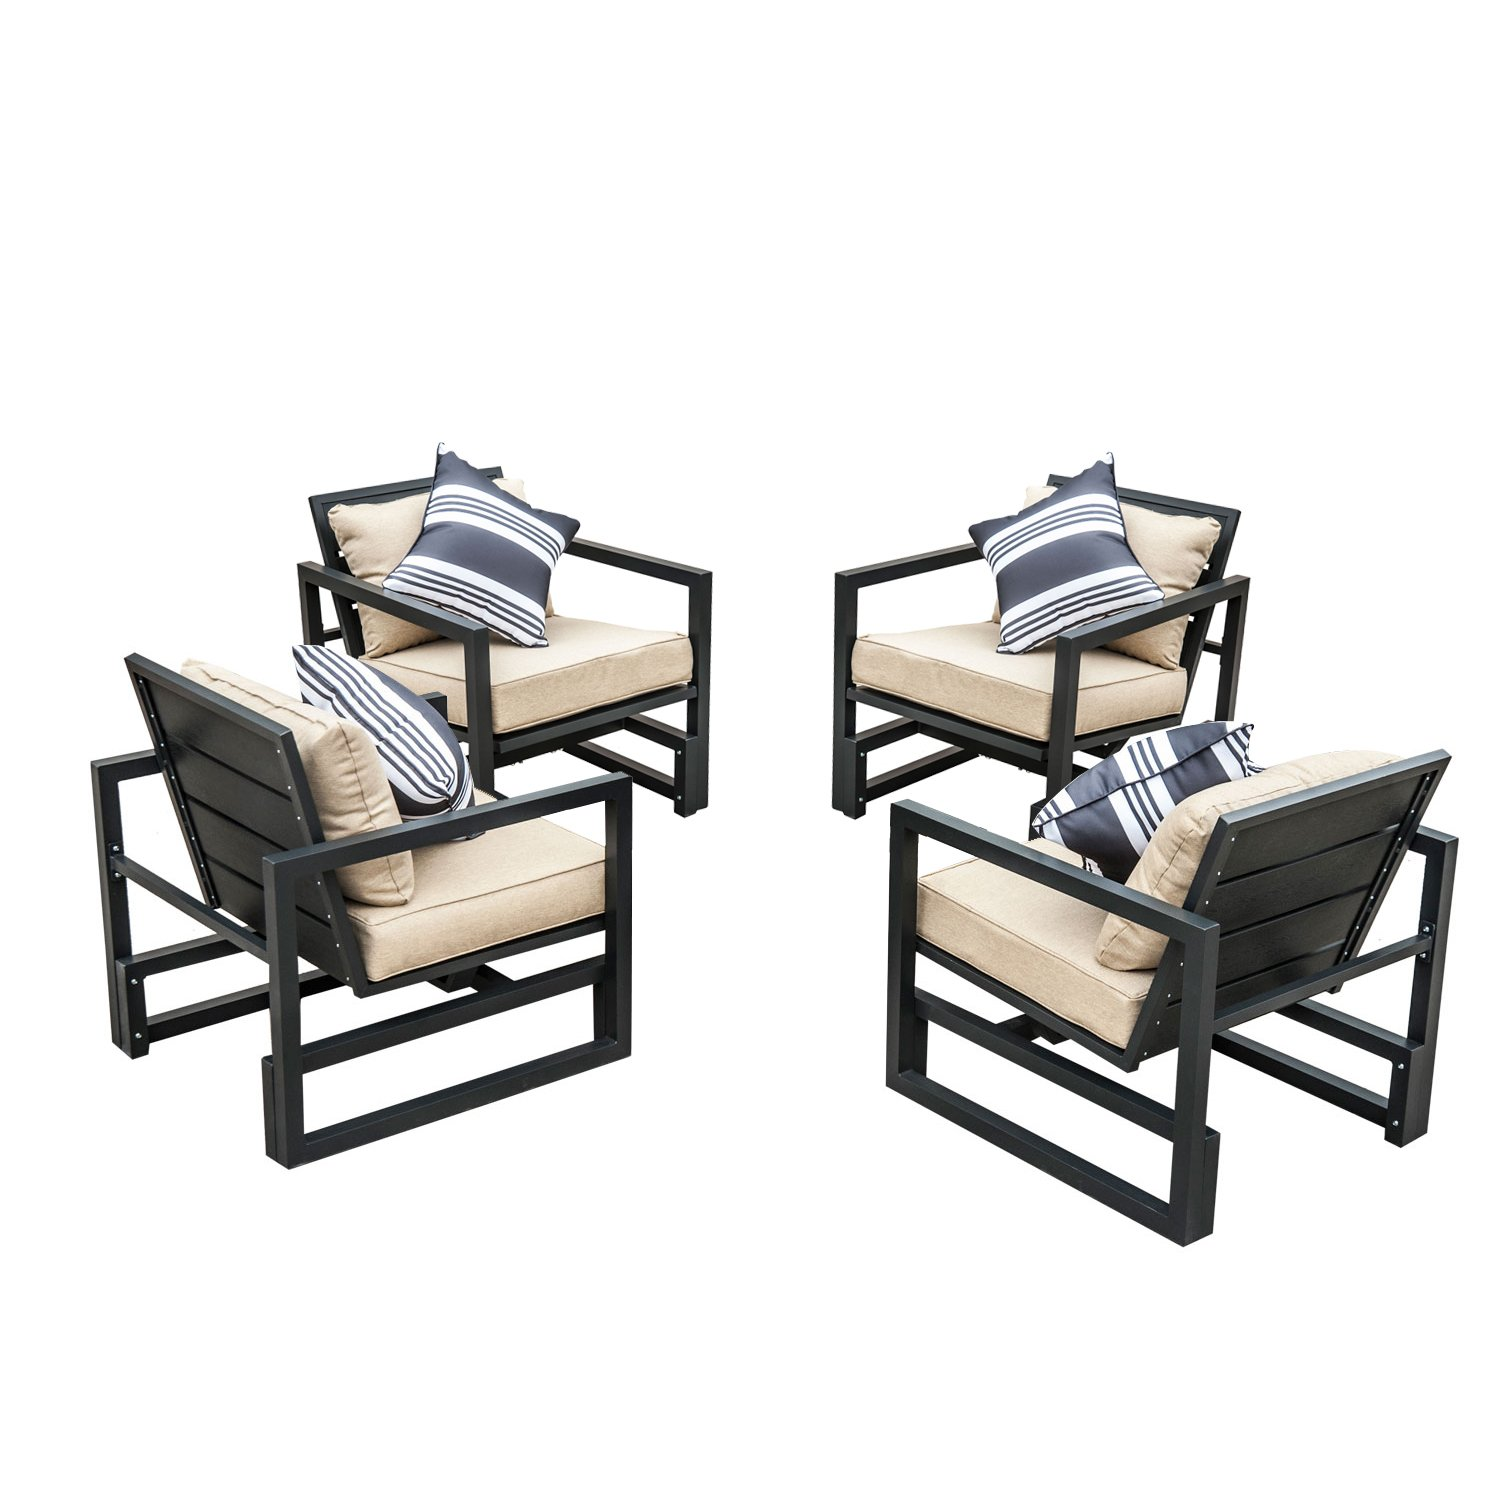 4 x alu sessel sitzgarnitur loungesessel aluminium relax sessel non wood gartenm bel stuhl m bel. Black Bedroom Furniture Sets. Home Design Ideas